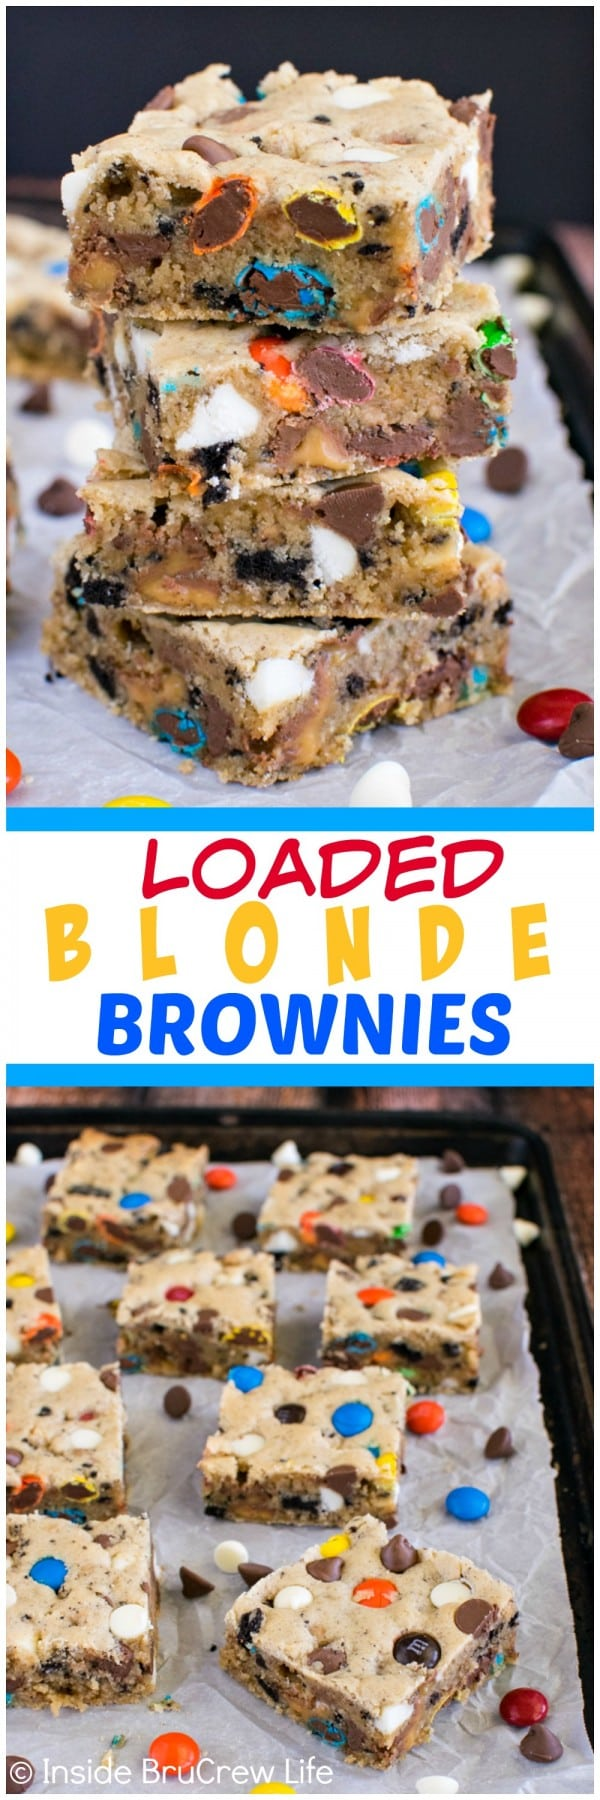 Loaded Blonde Brownies - adding lots of extra candy and cookies makes these cookie bars disappear in a hurry! Easy recipe to make for dessert or bake sales!